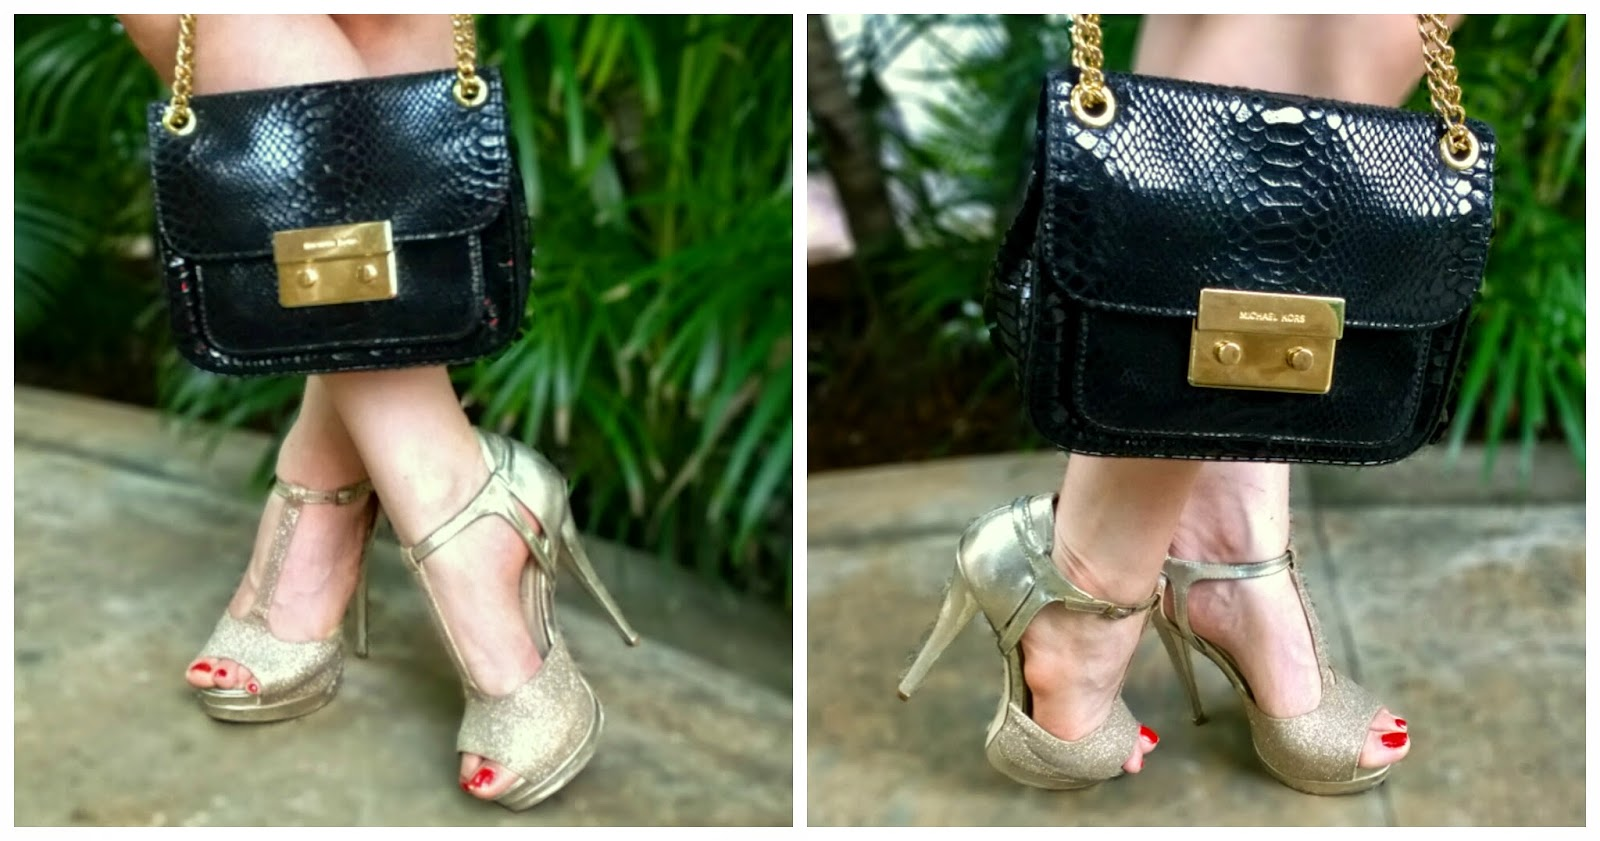 Michael Kors Python Black Shoulder Bag, Gold Steve Madden Heels